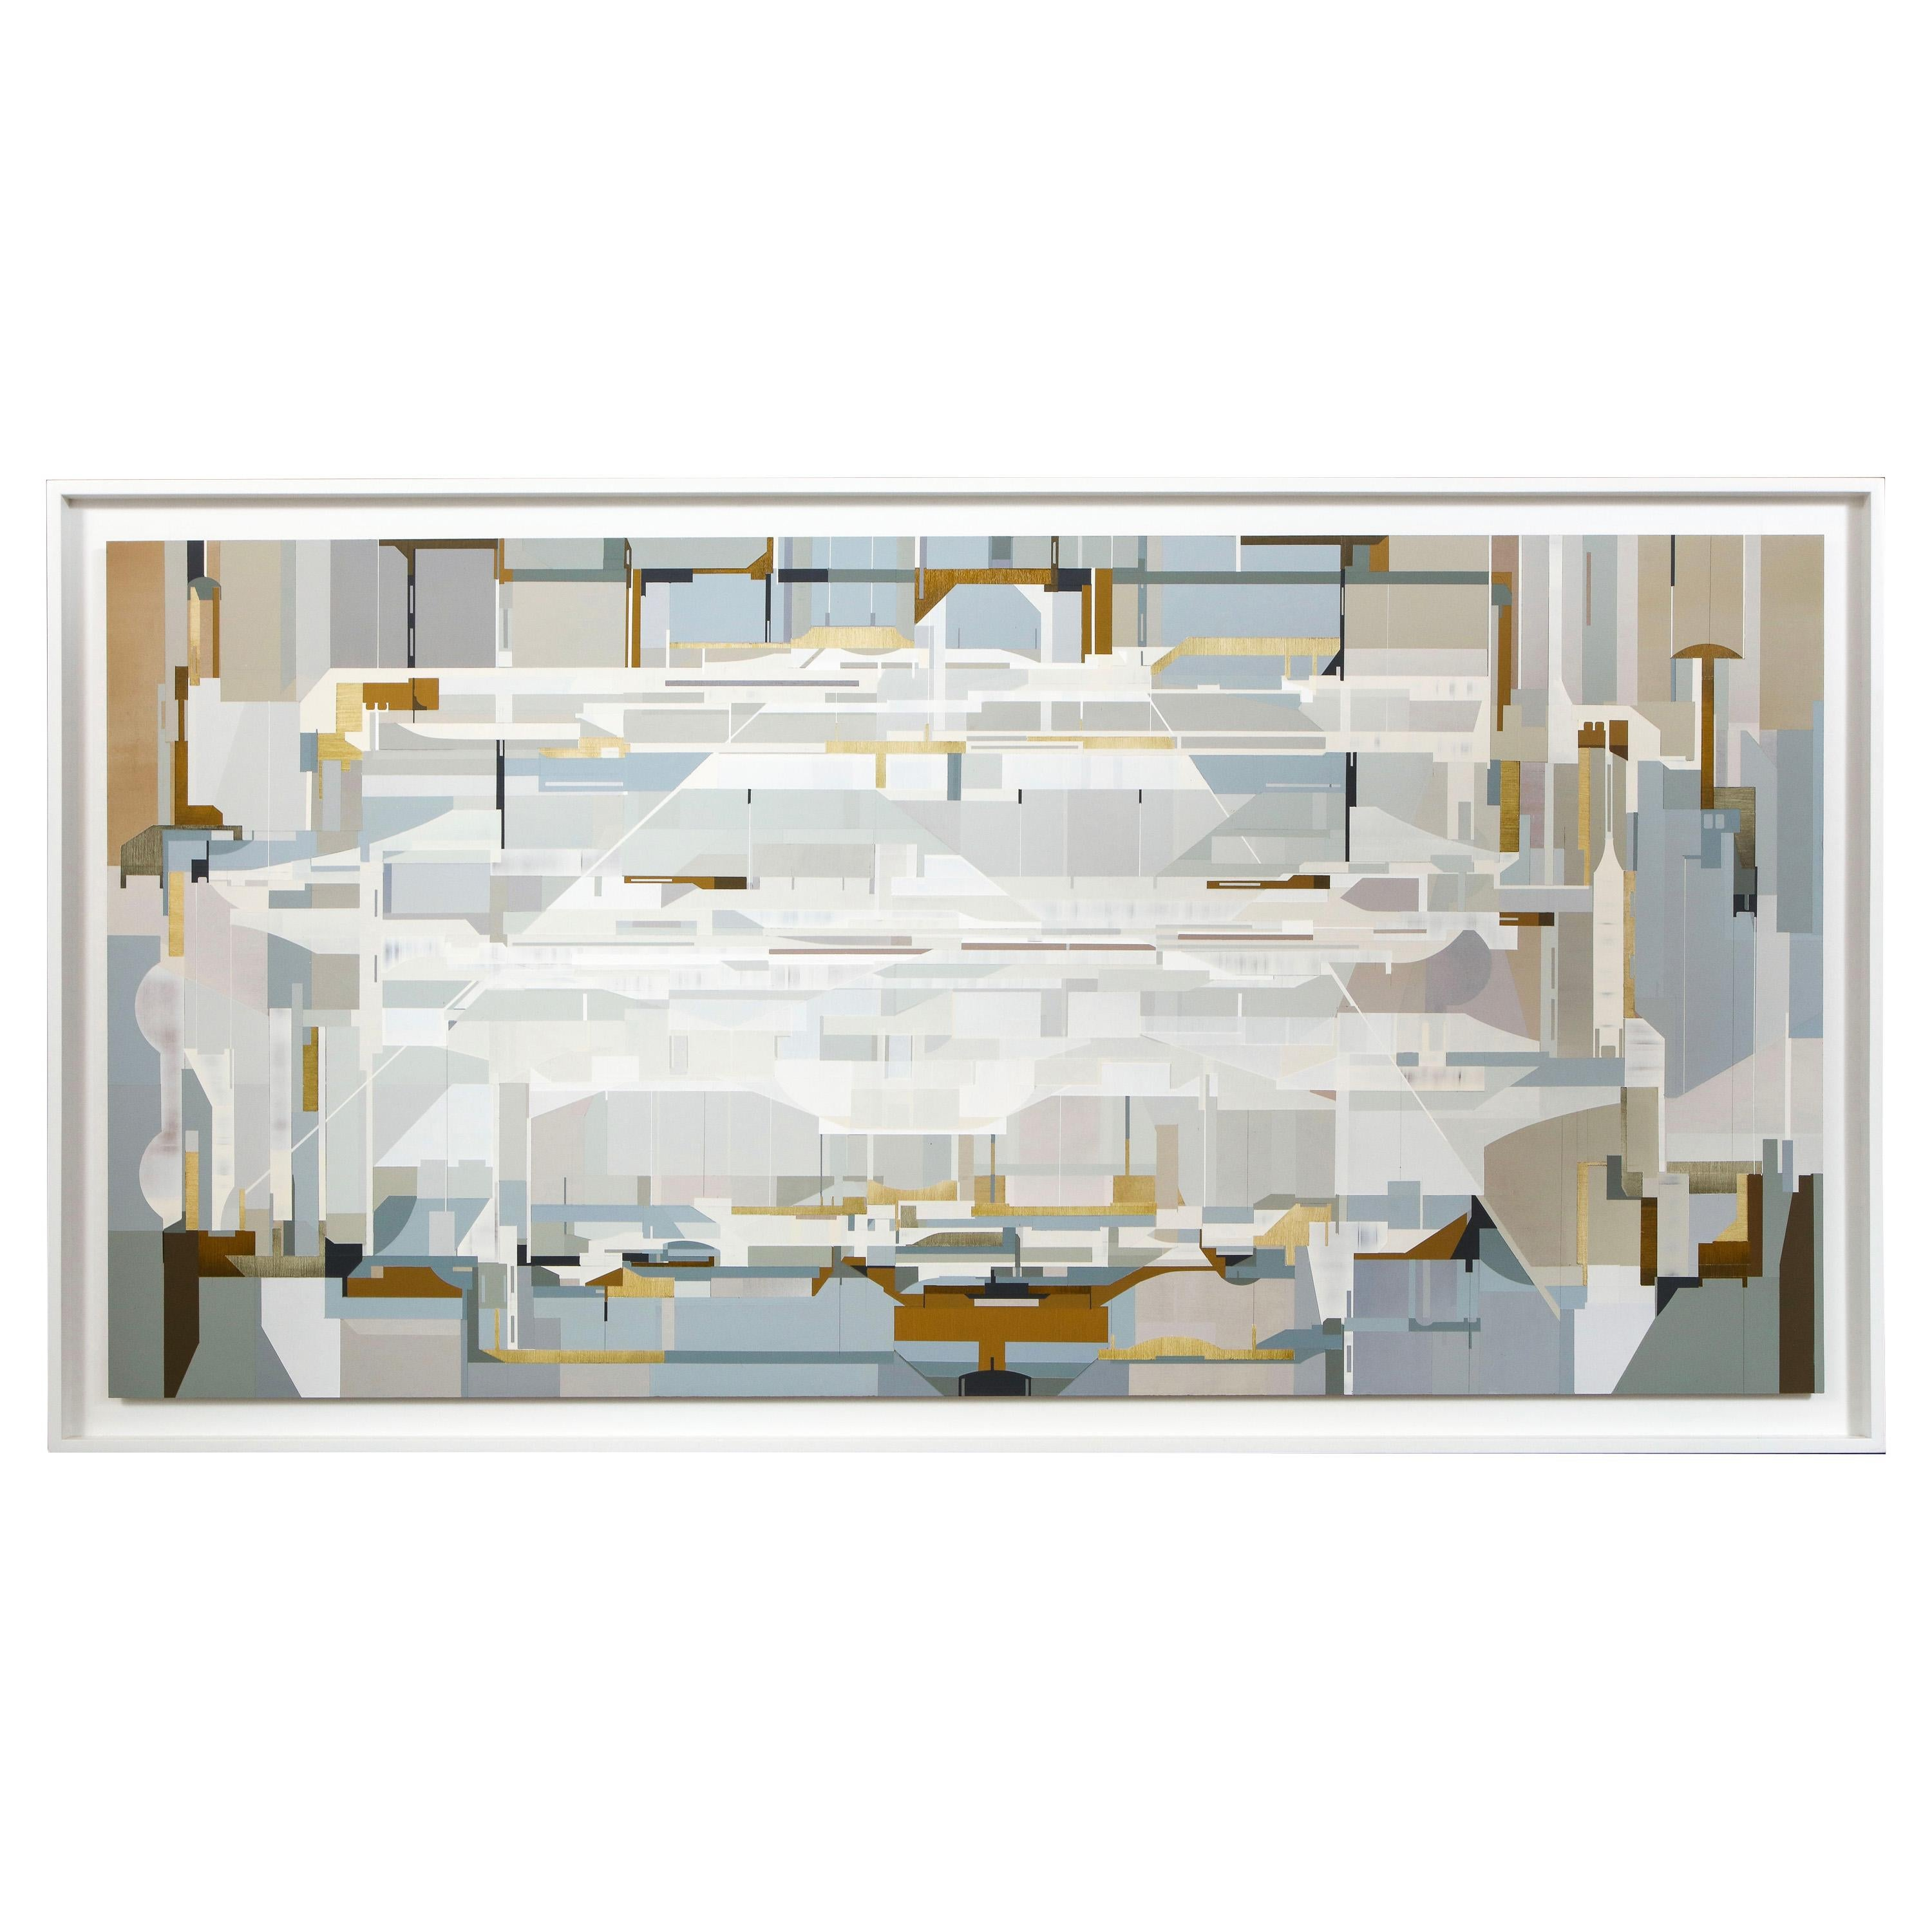 """""""Tangential,"""" 2020 Large Gray, White and Blue Abstract Painting by James Kennedy"""